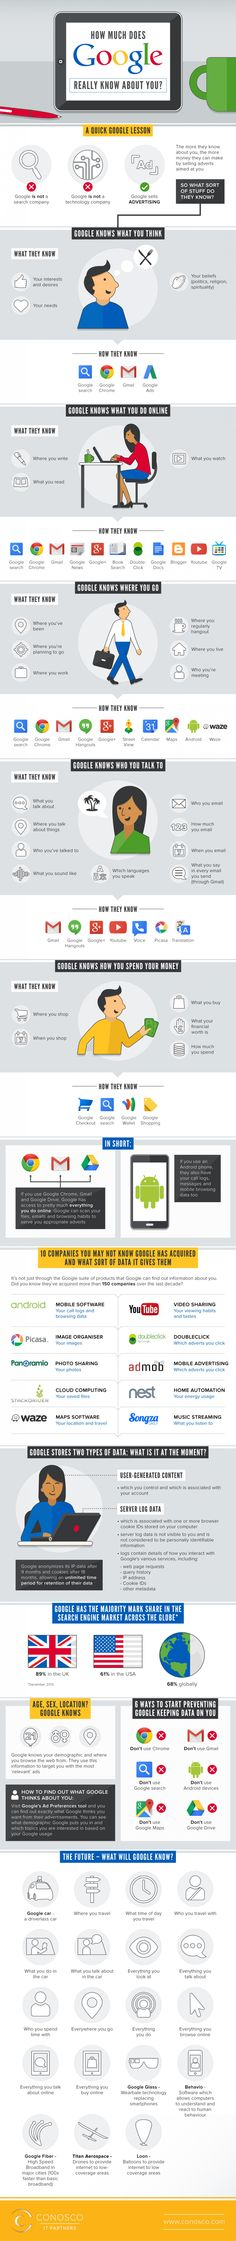 Infographic: How Much Does Google Really Know About You? - DesignTAXI.com